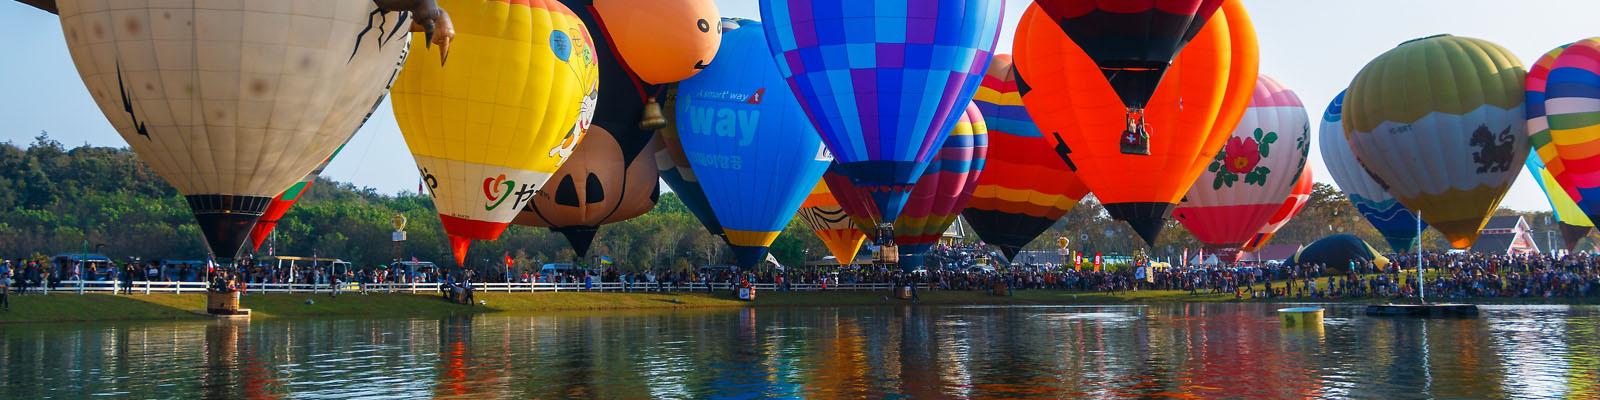 This is an image of hot air balloons in Albuquerque where ASTA-USA provides professional translation services.